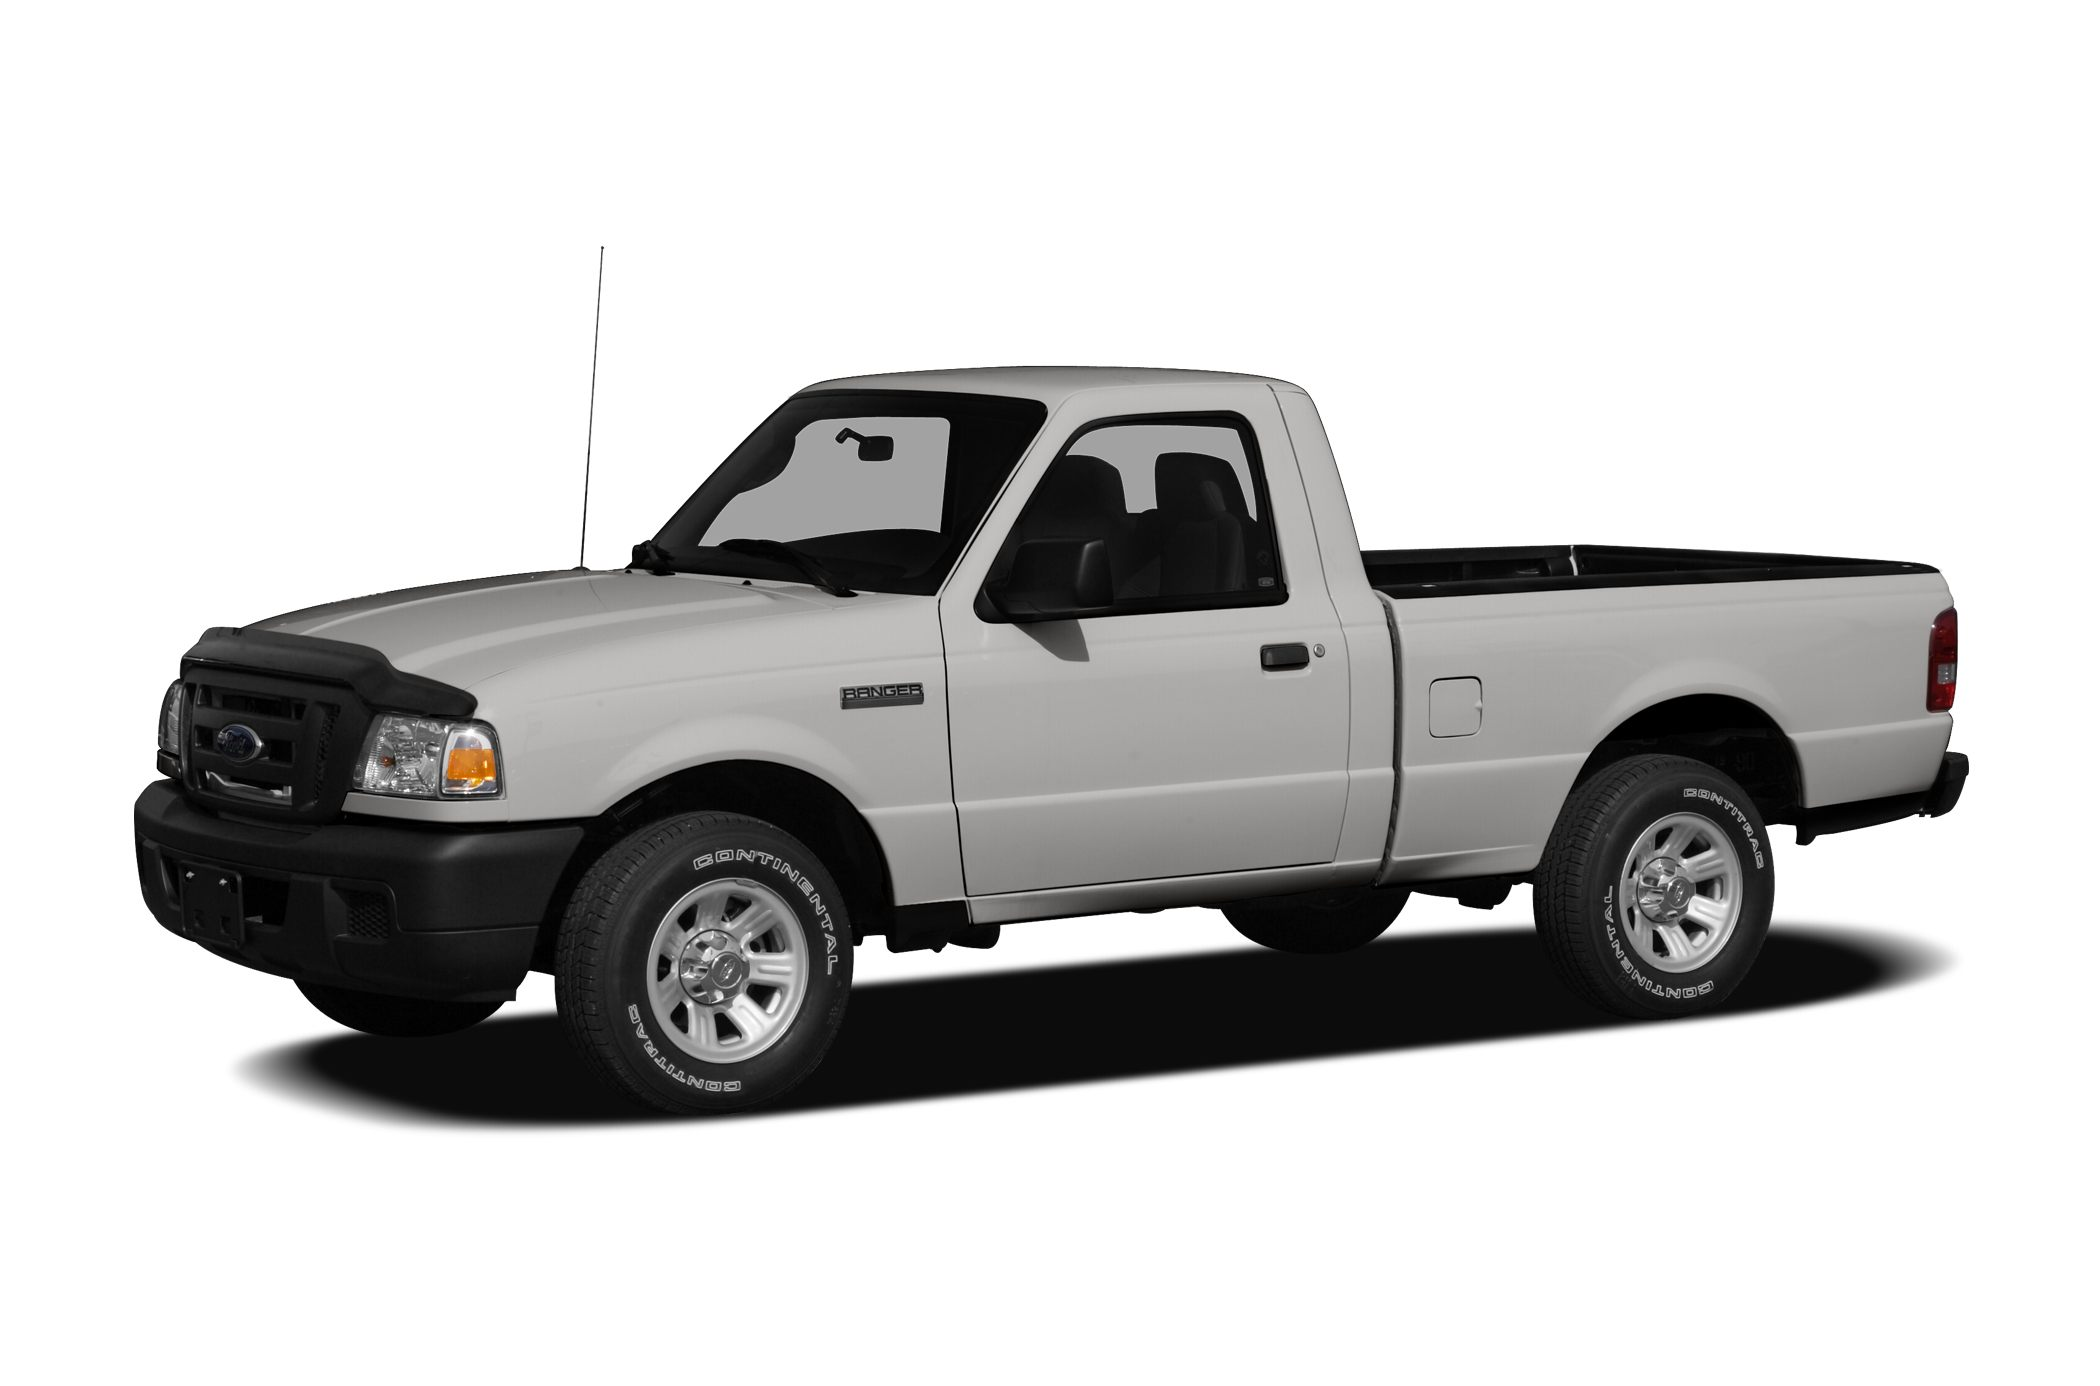 2008 Ford Ranger XL Regular Cab Pickup for sale in Seneca for $8,443 with 104,359 miles